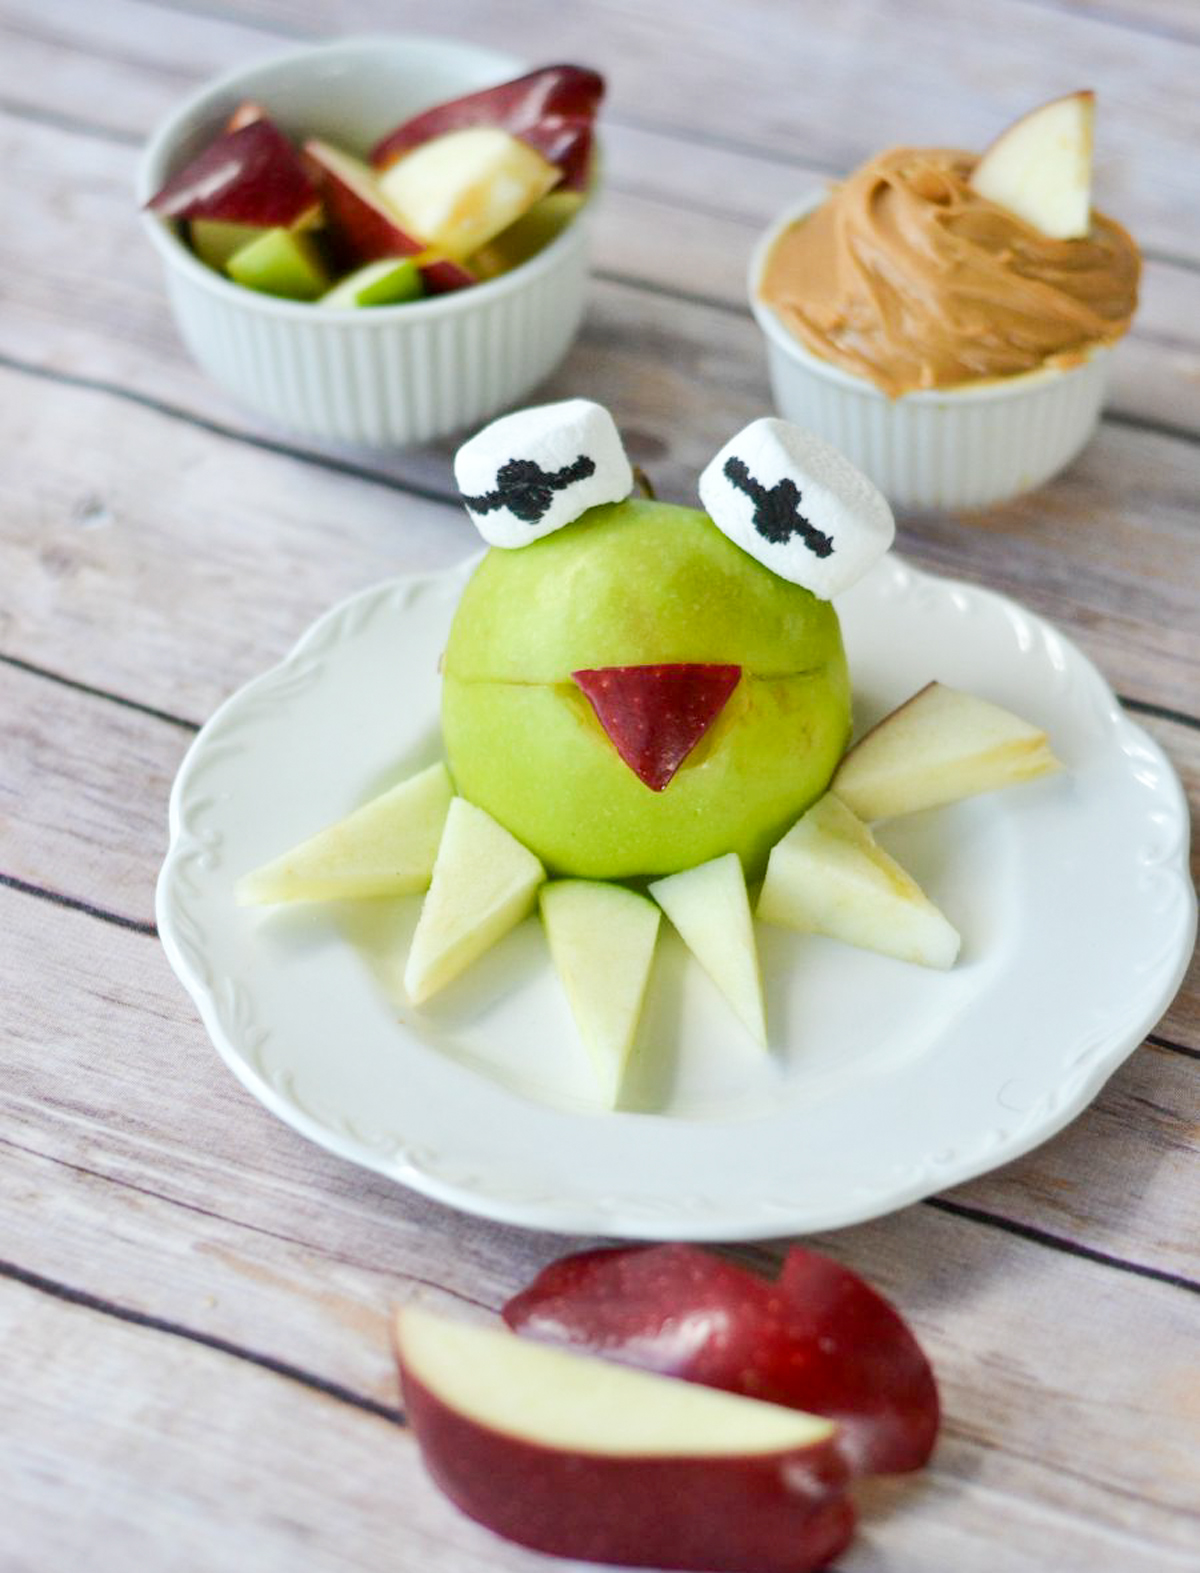 fun healthy snack for kids